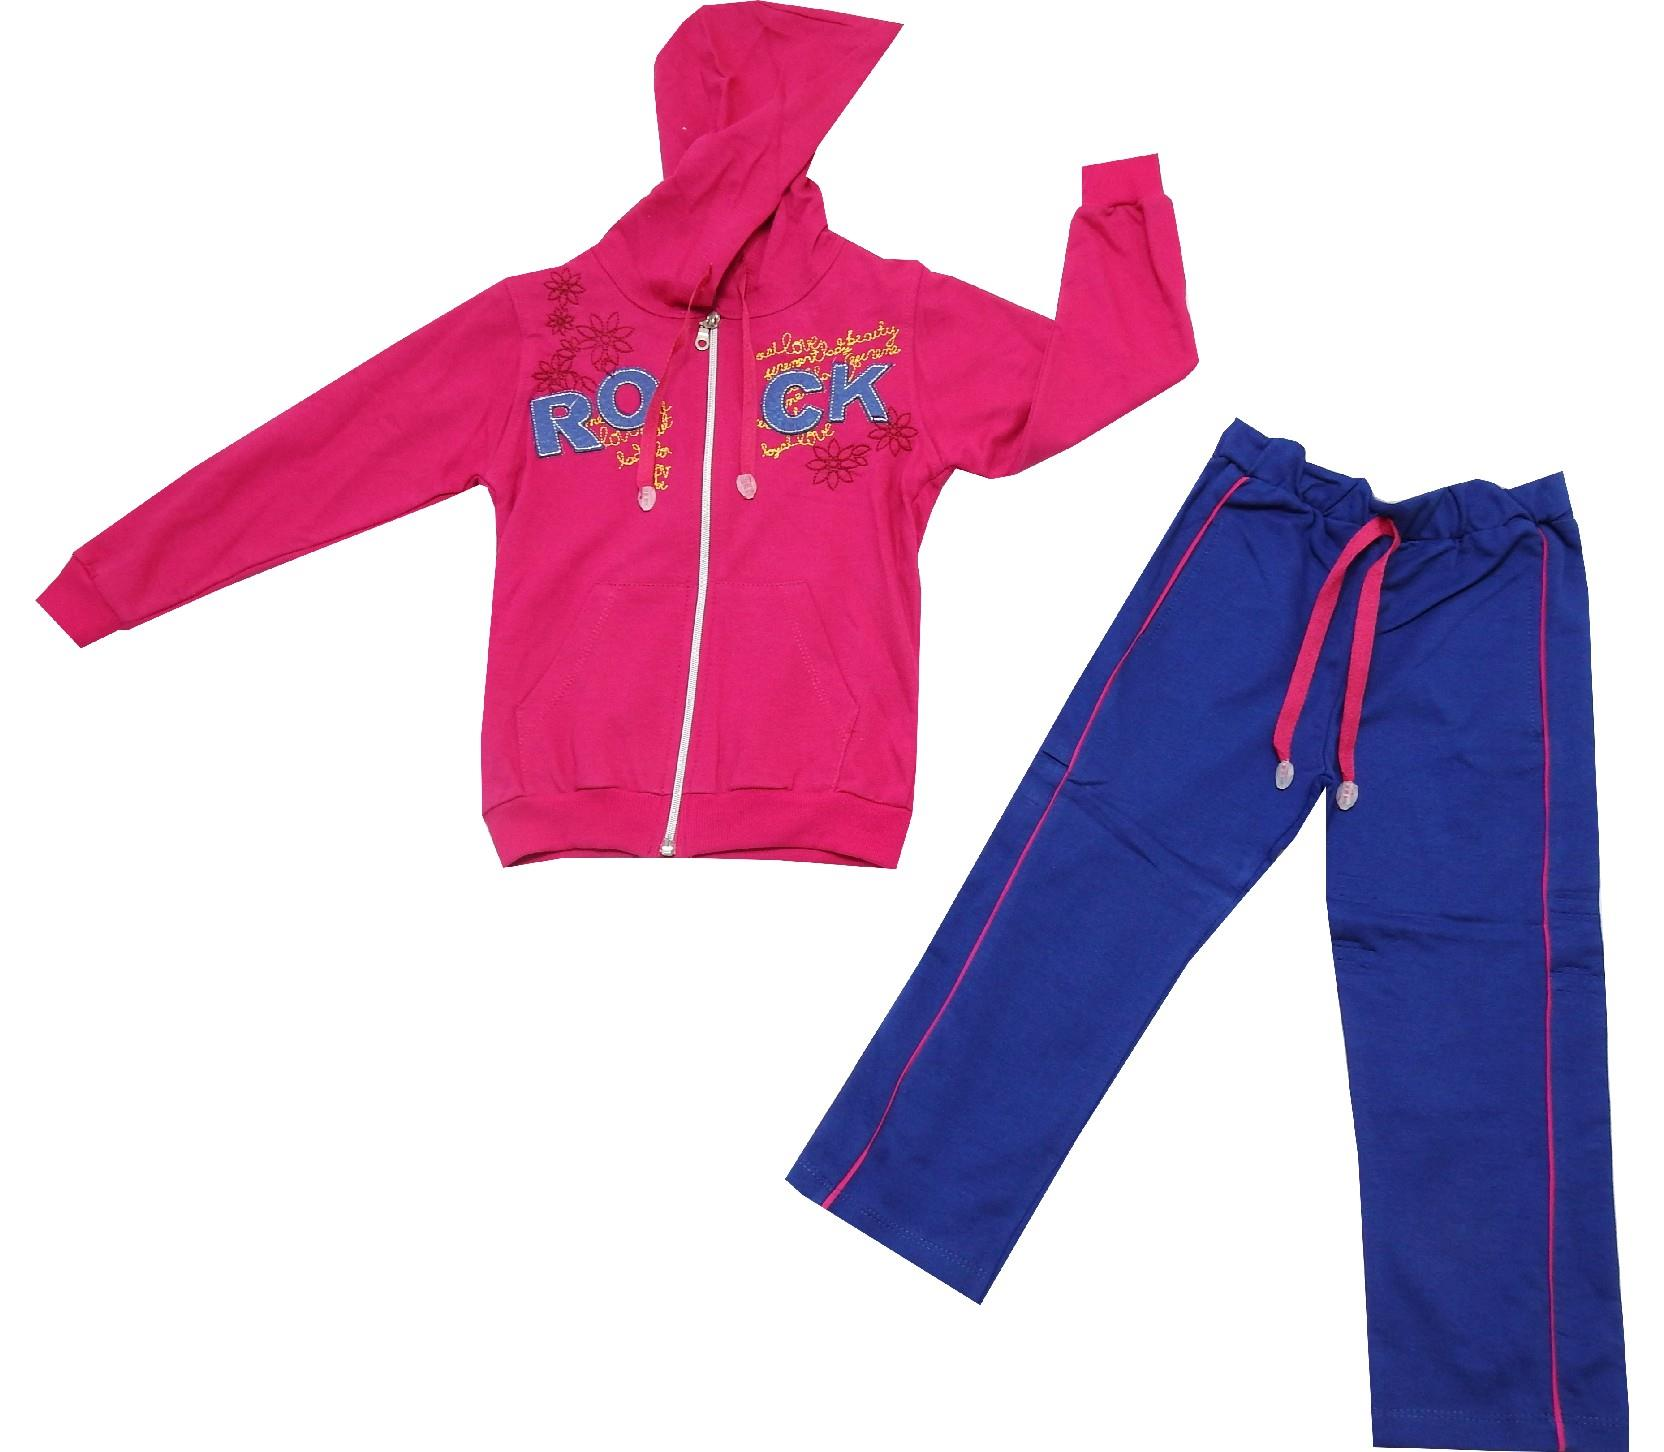 WHOLESALE HOODED ROCK PRINT SWEATSHIRT AND TROUSER DOUBLE SET FOR GIRL (5-6-7-8 AGE)